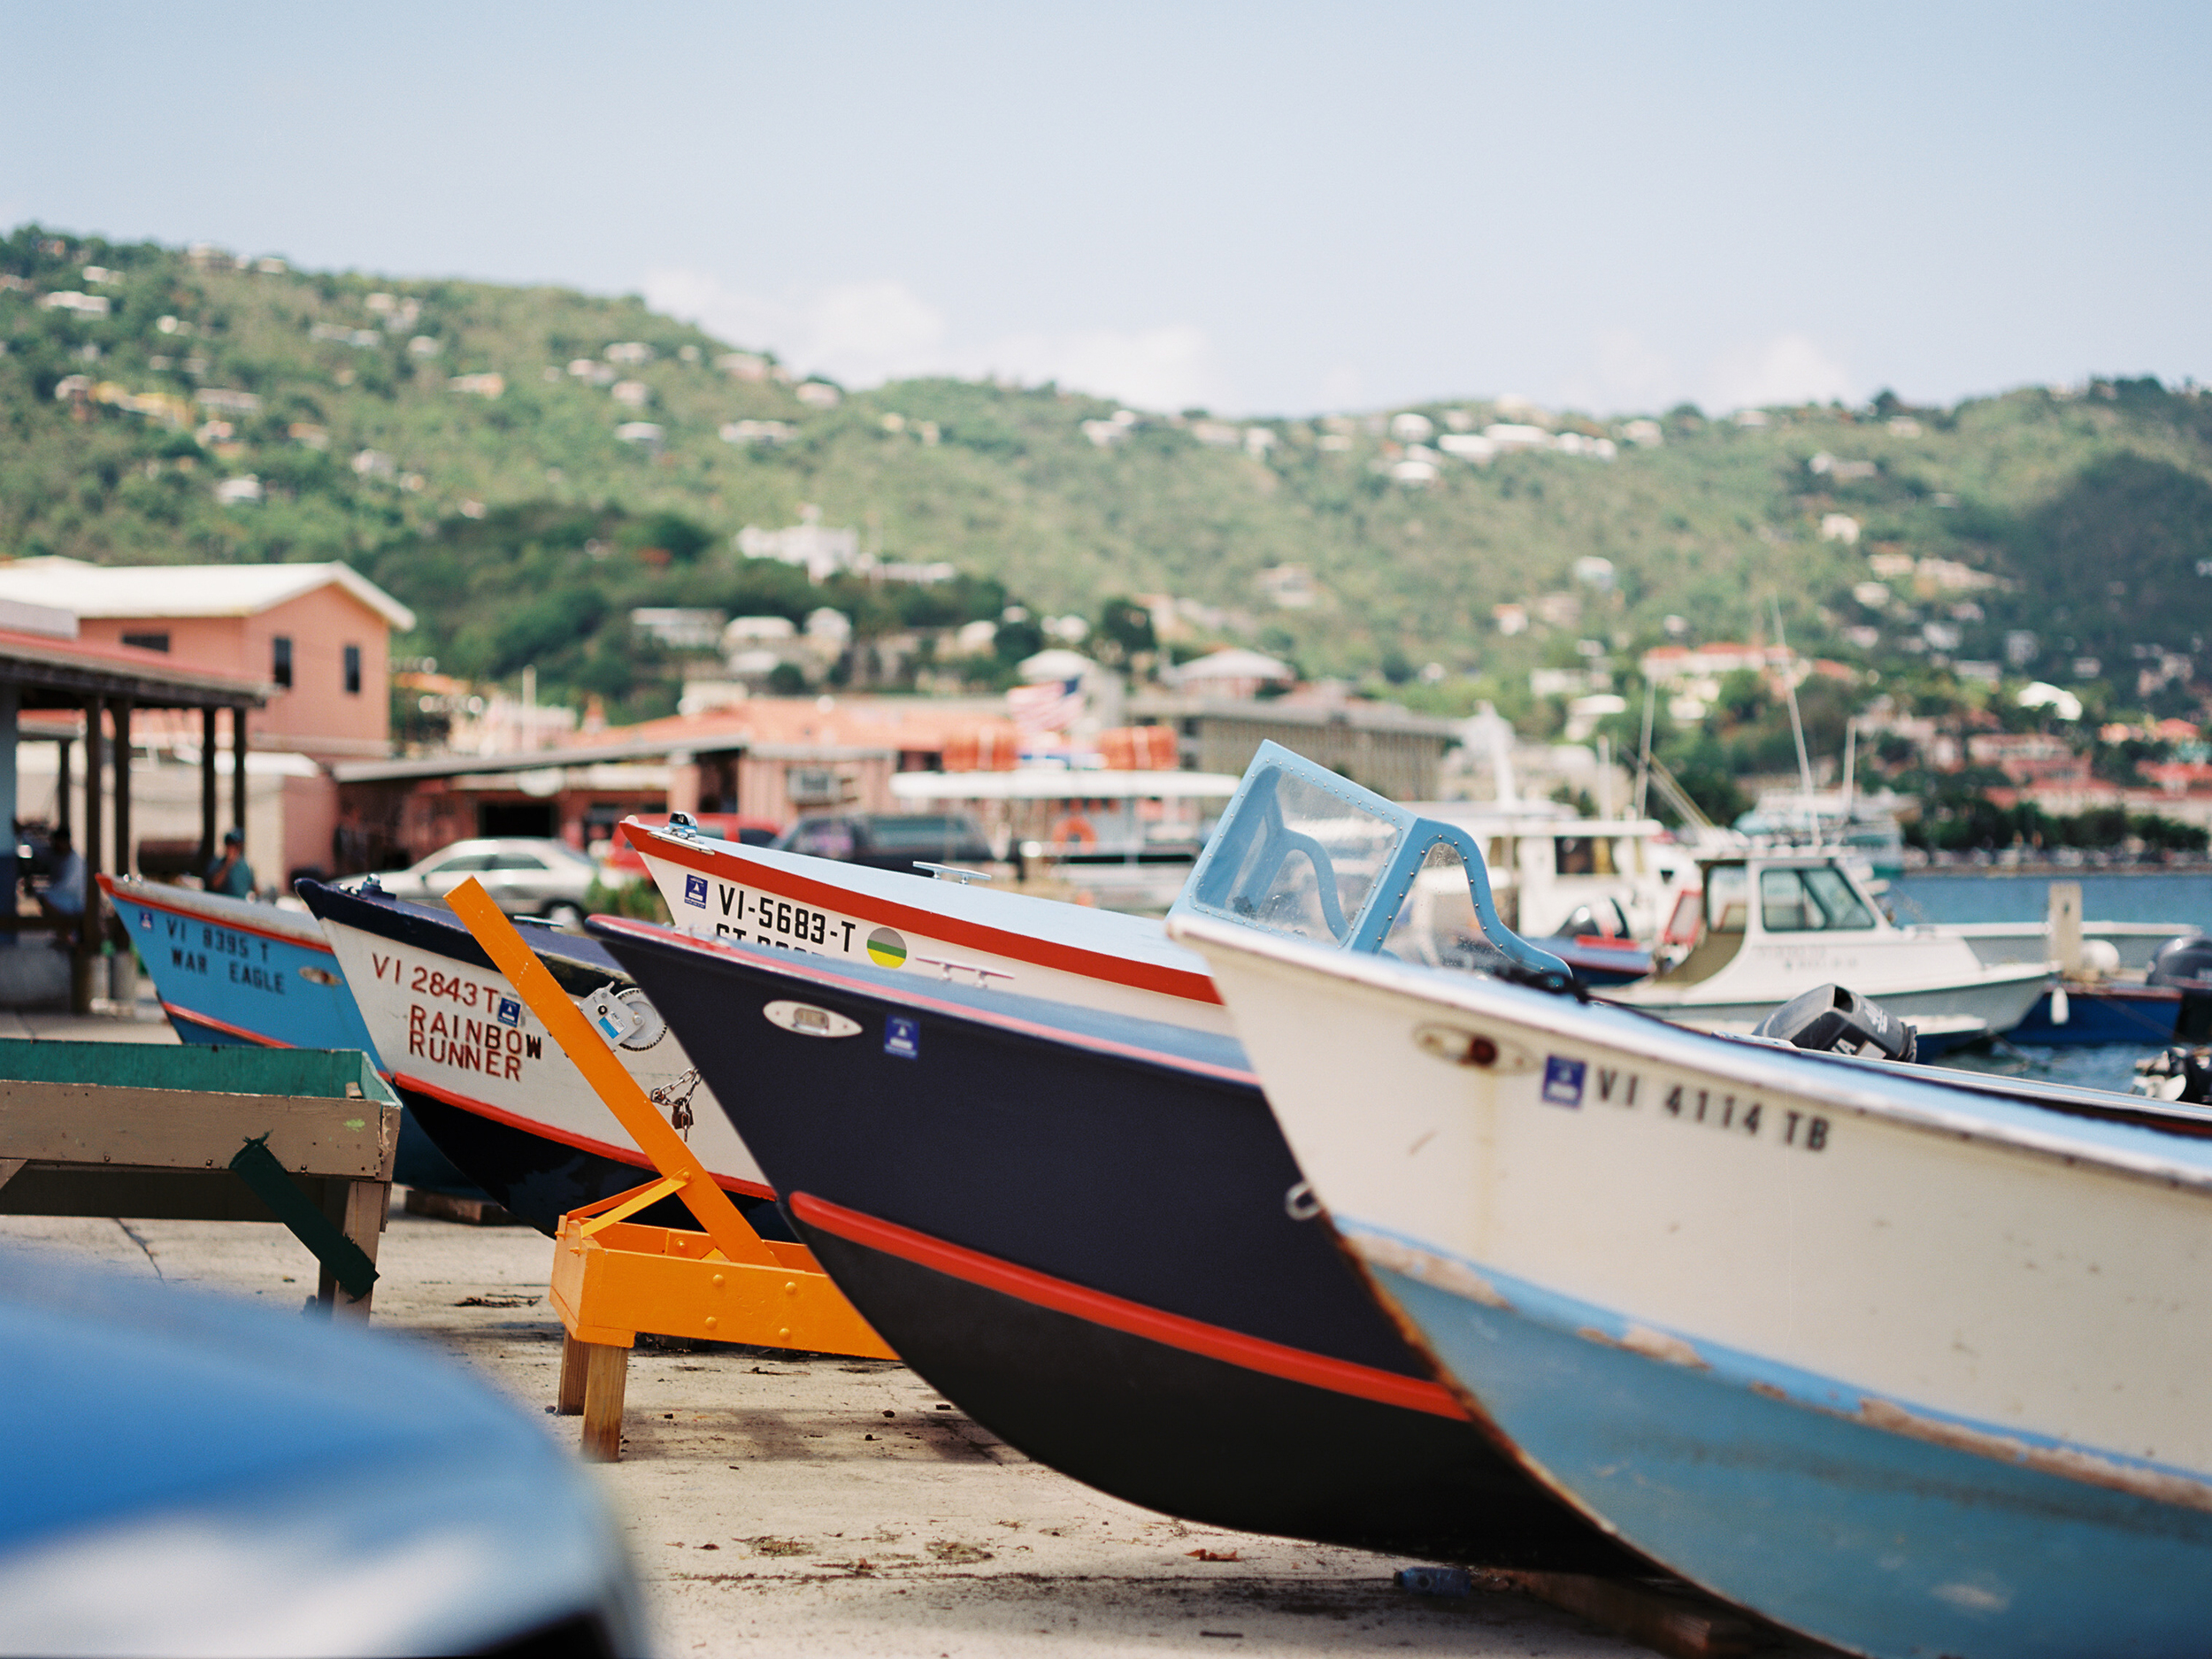 St. Thomas, water island USVI boats traveling photographer